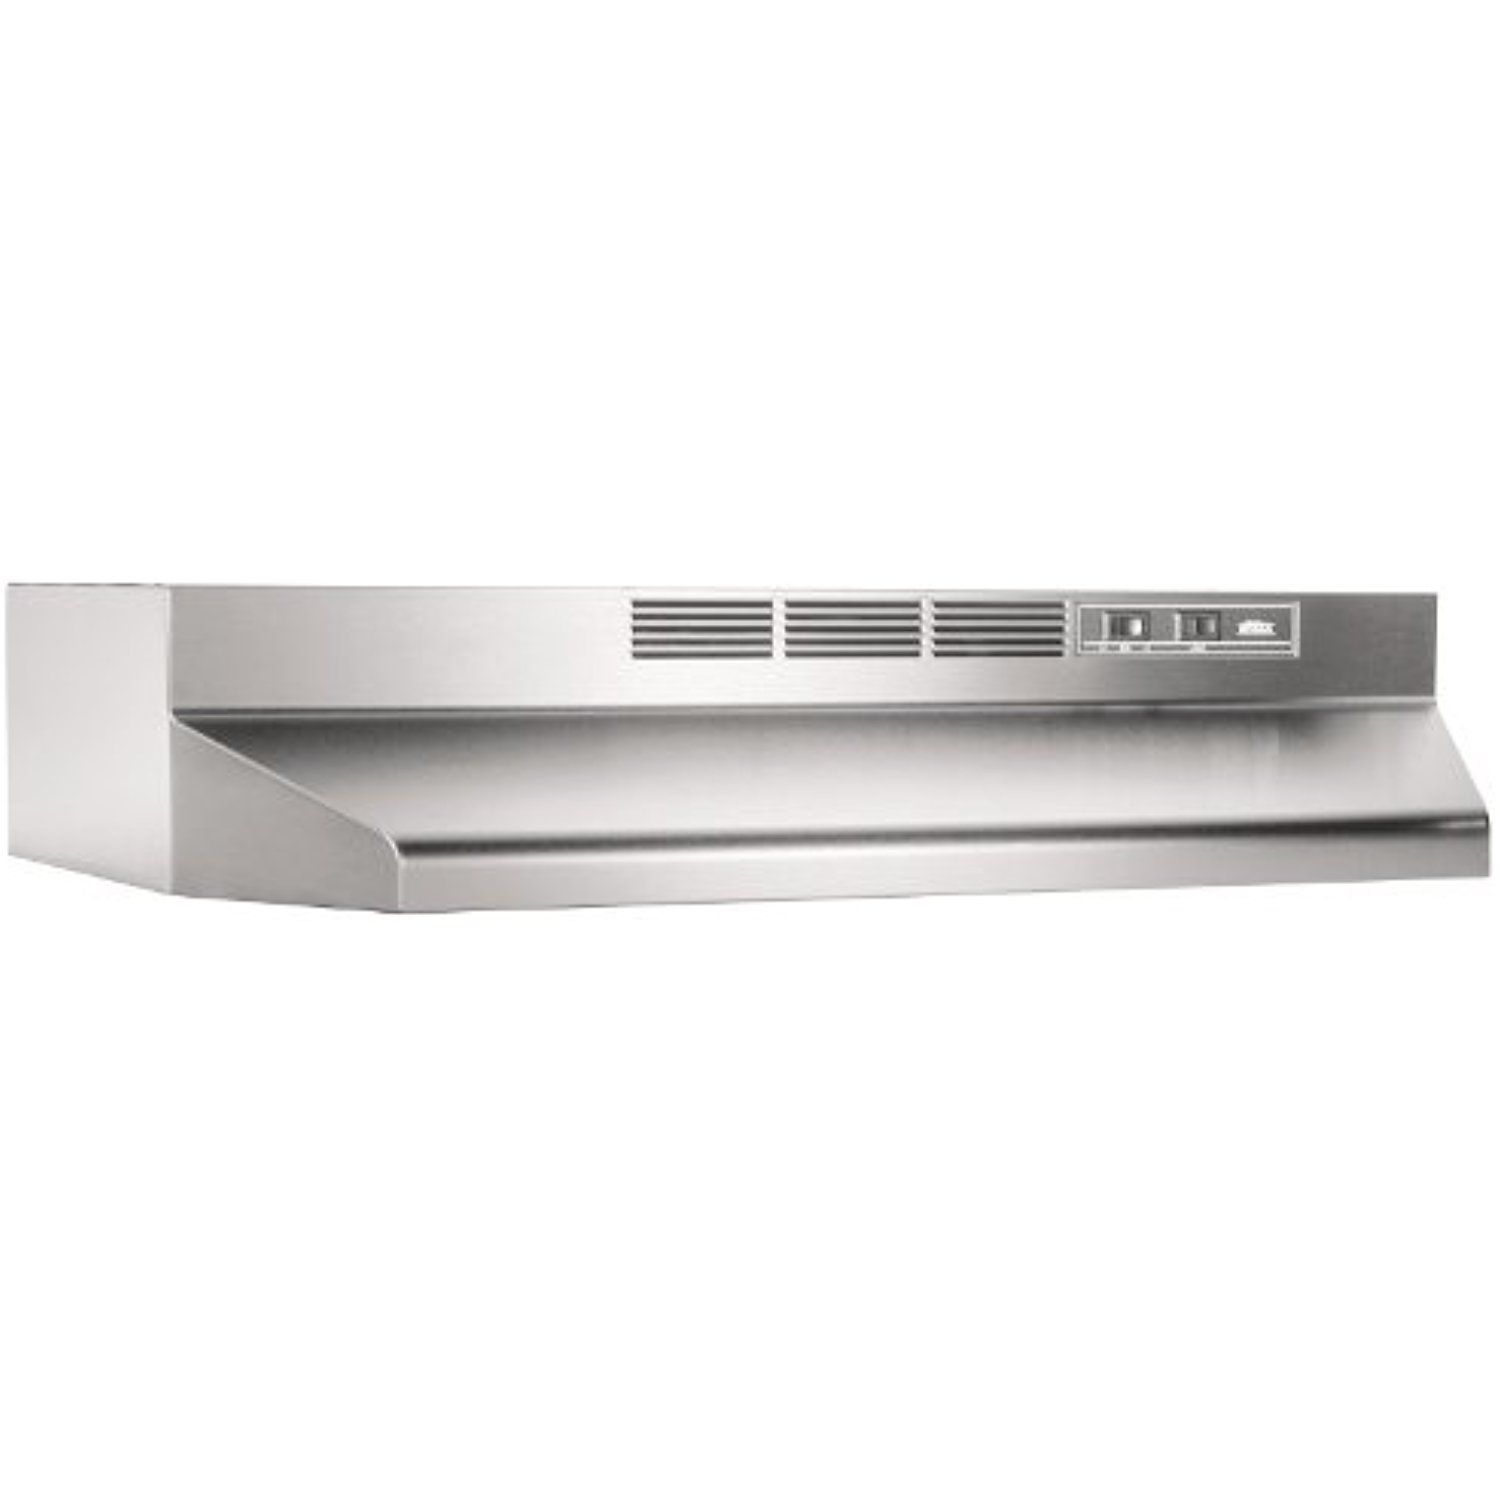 Broan 413004 Ada Capable Non Ducted Under Cabinet Range Hood 30 Inch Stainless Steel See This Grea Ductless Range Hood Broan Stainless Steel Range